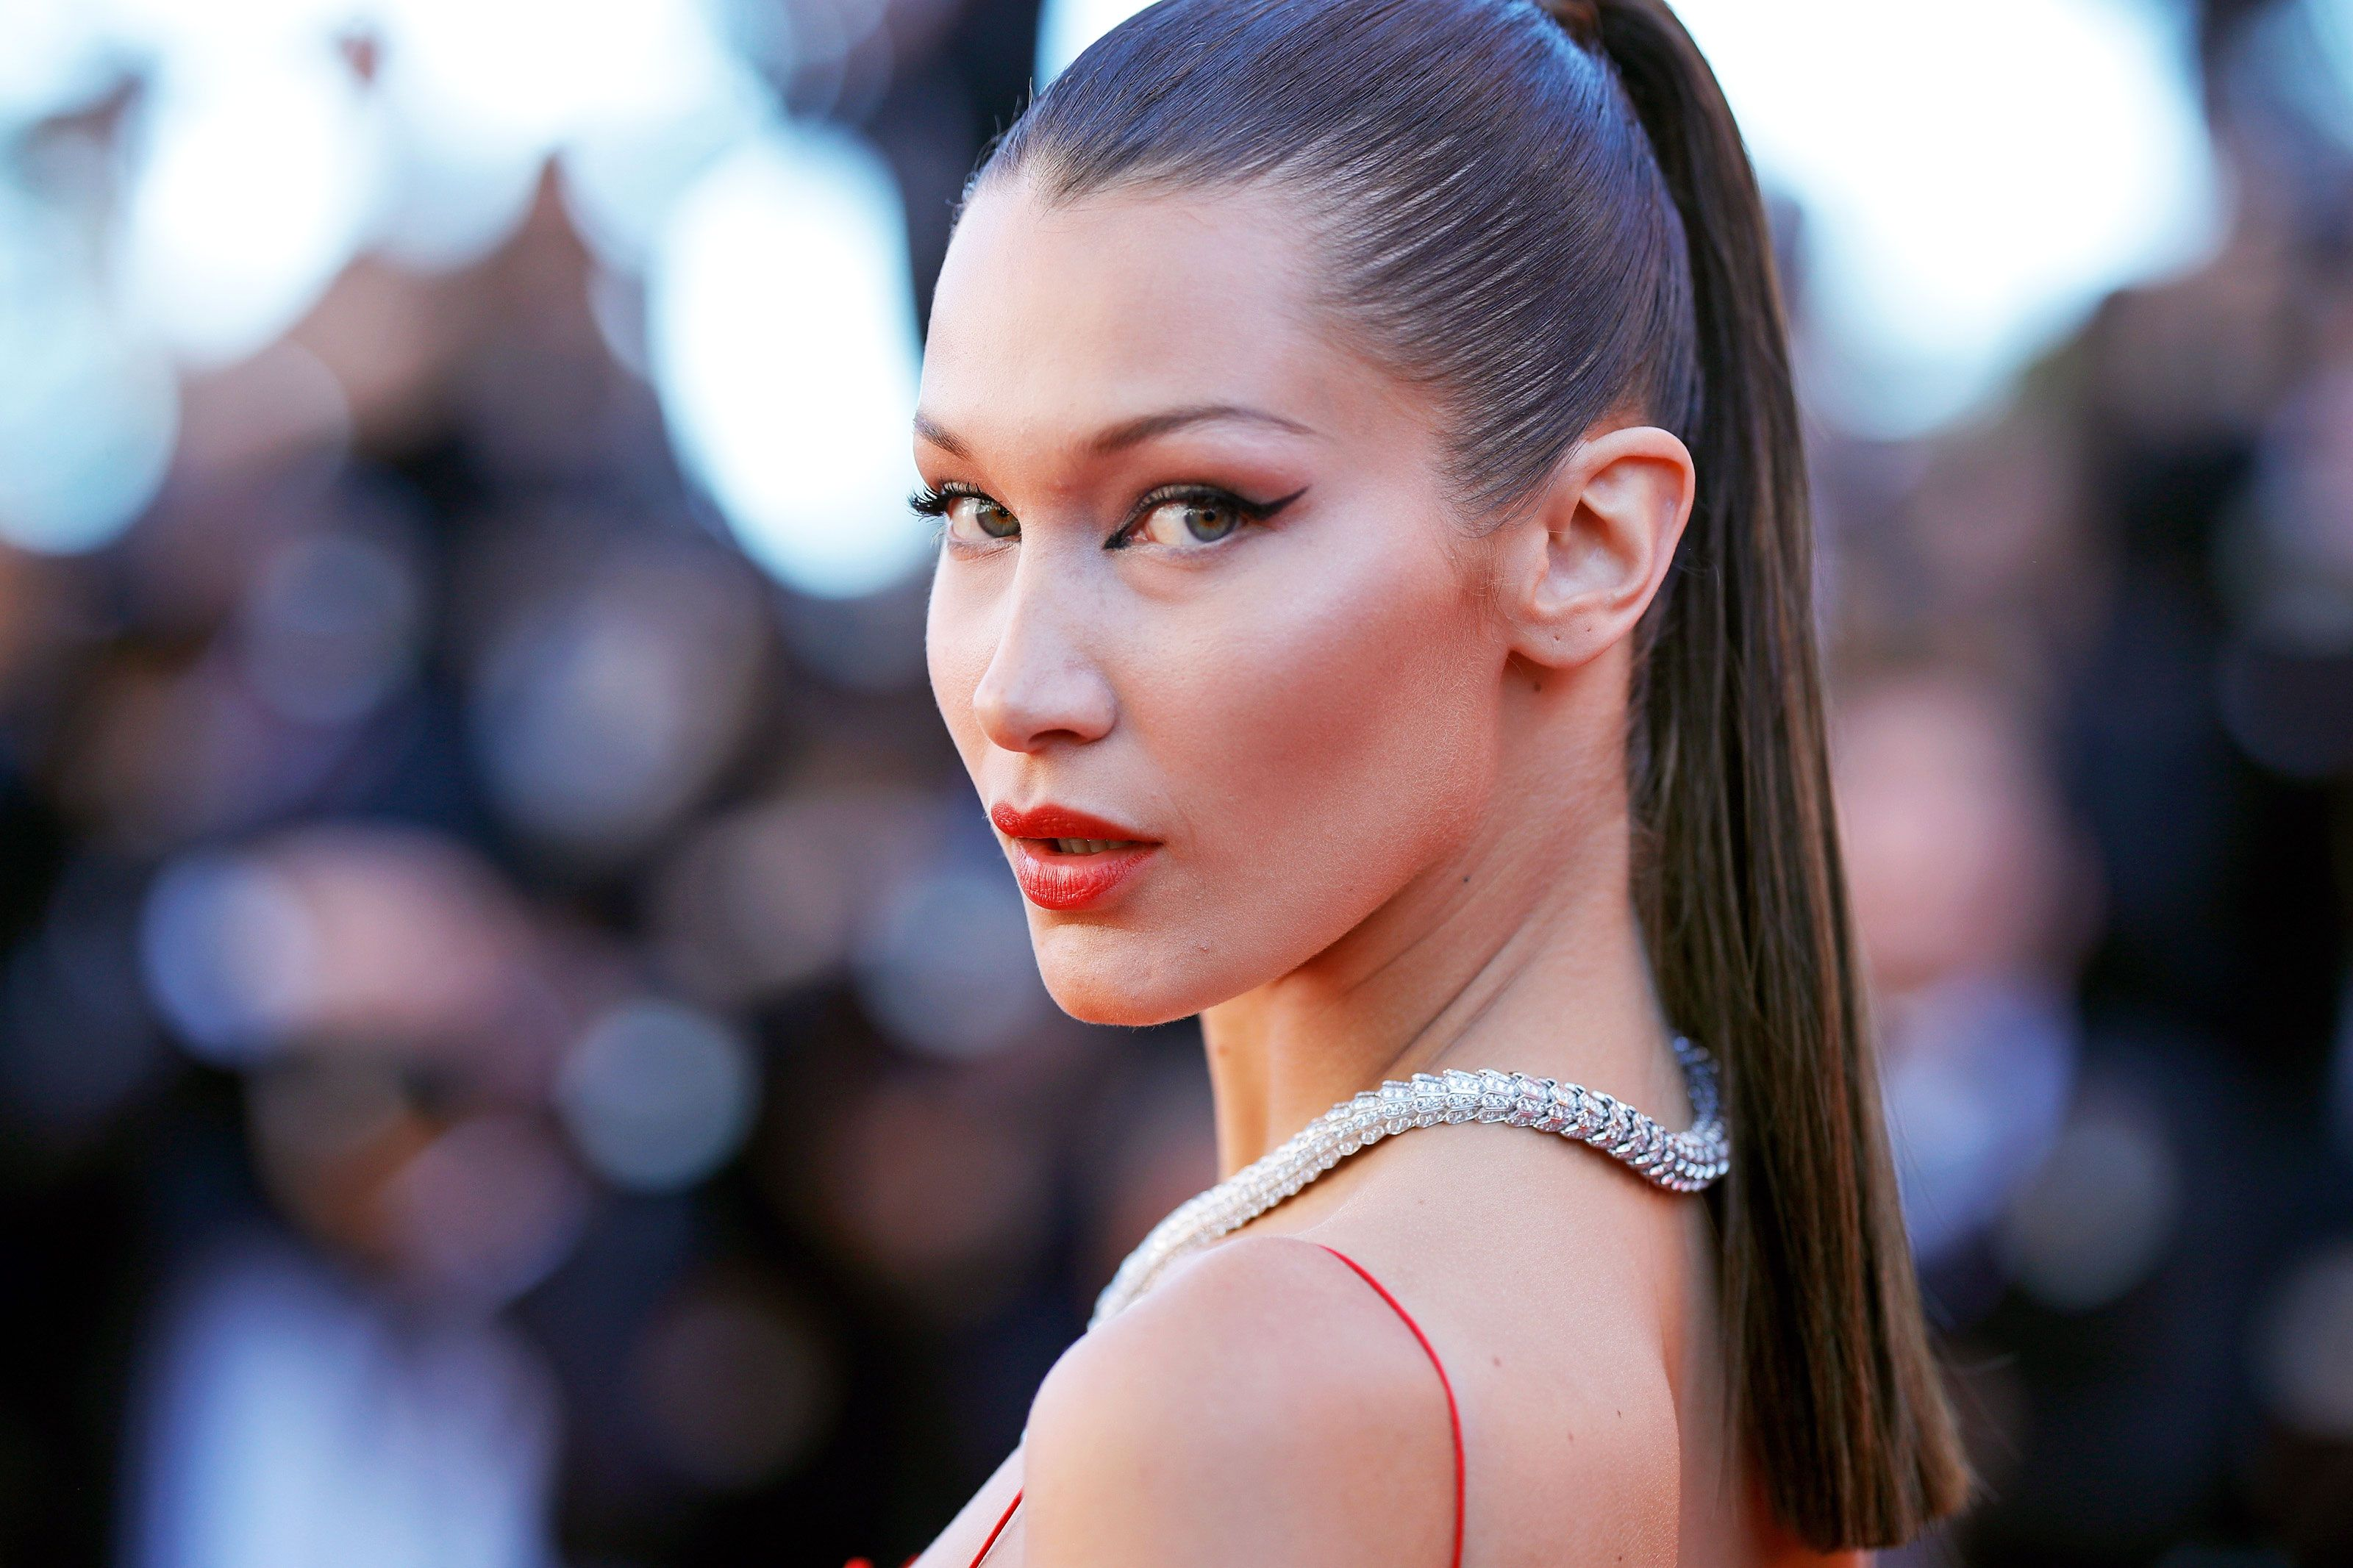 Bella Hadid Just Dyed Her Hair Blonde, and the Pics Are GORGEOUS